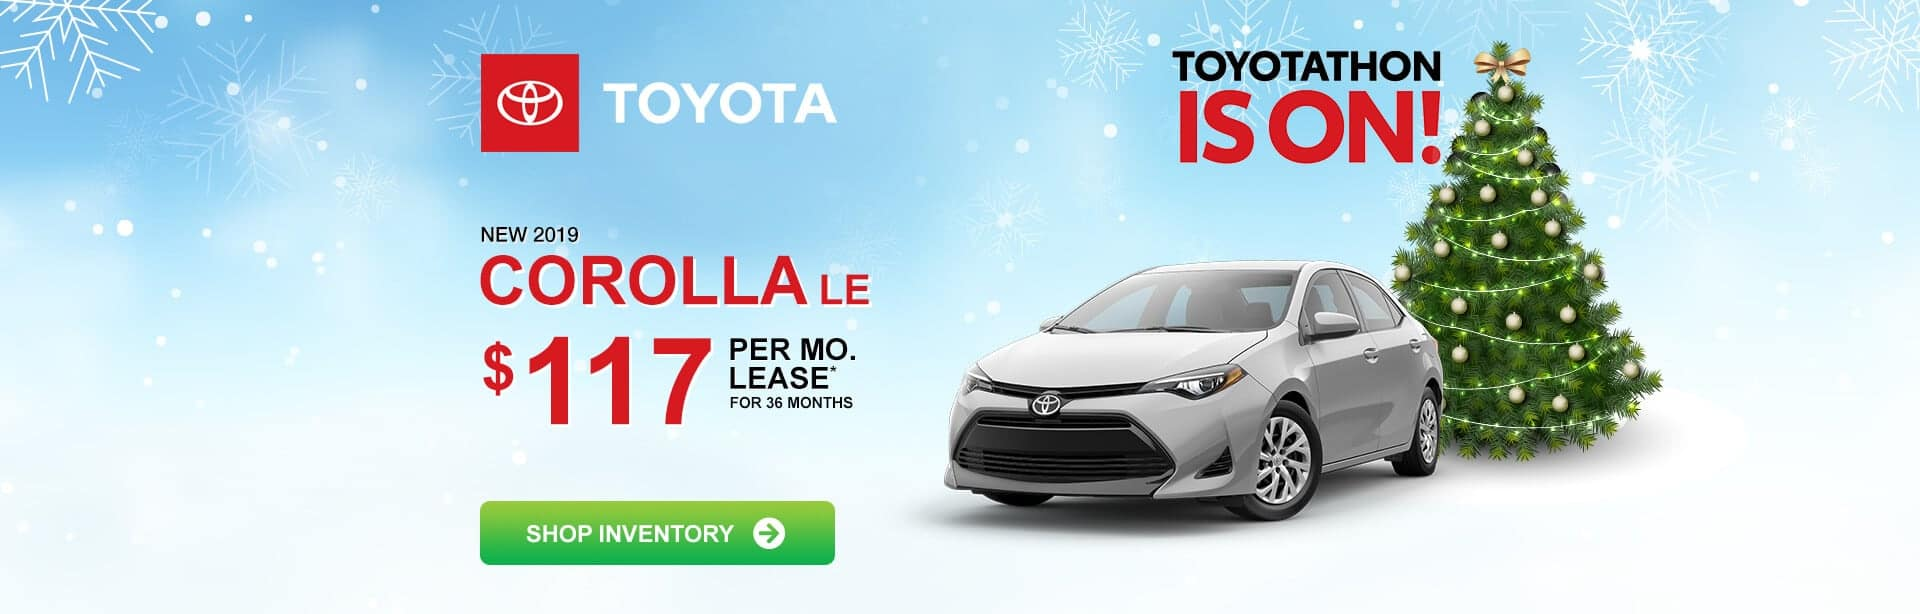 Toyota Corolla Lease Special near Greenwood, Indiana during Toyotathon!